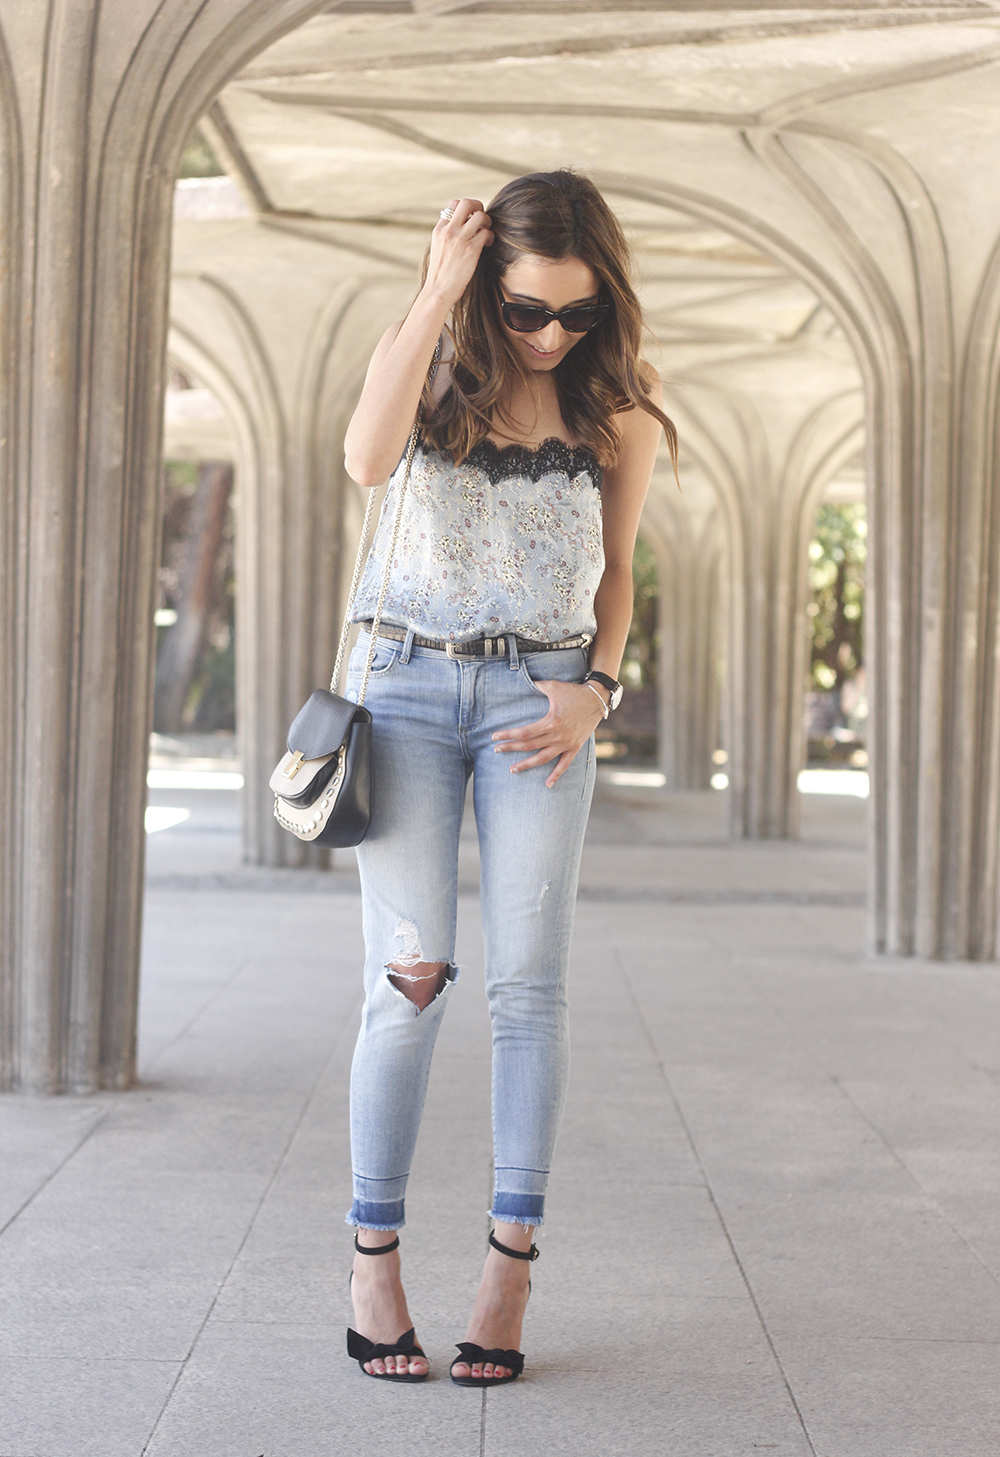 Lace top with skinny jeans heels summer outfit fashion style accesories17